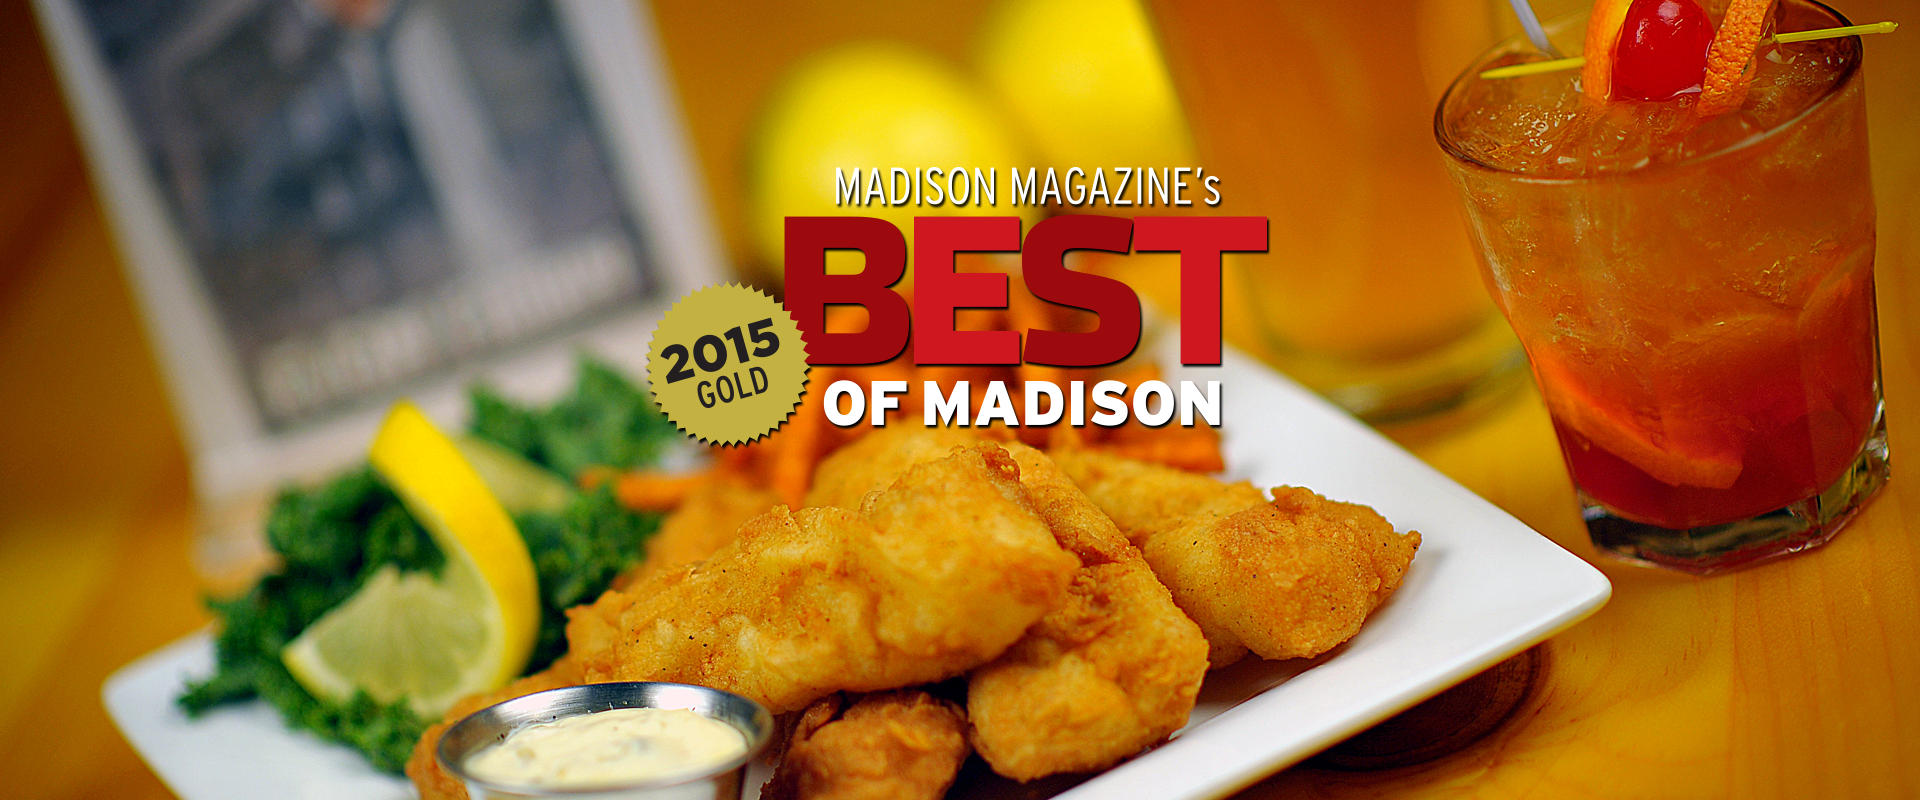 Crawfish Junction Winner of the Best of Madison Fish Fry 2015